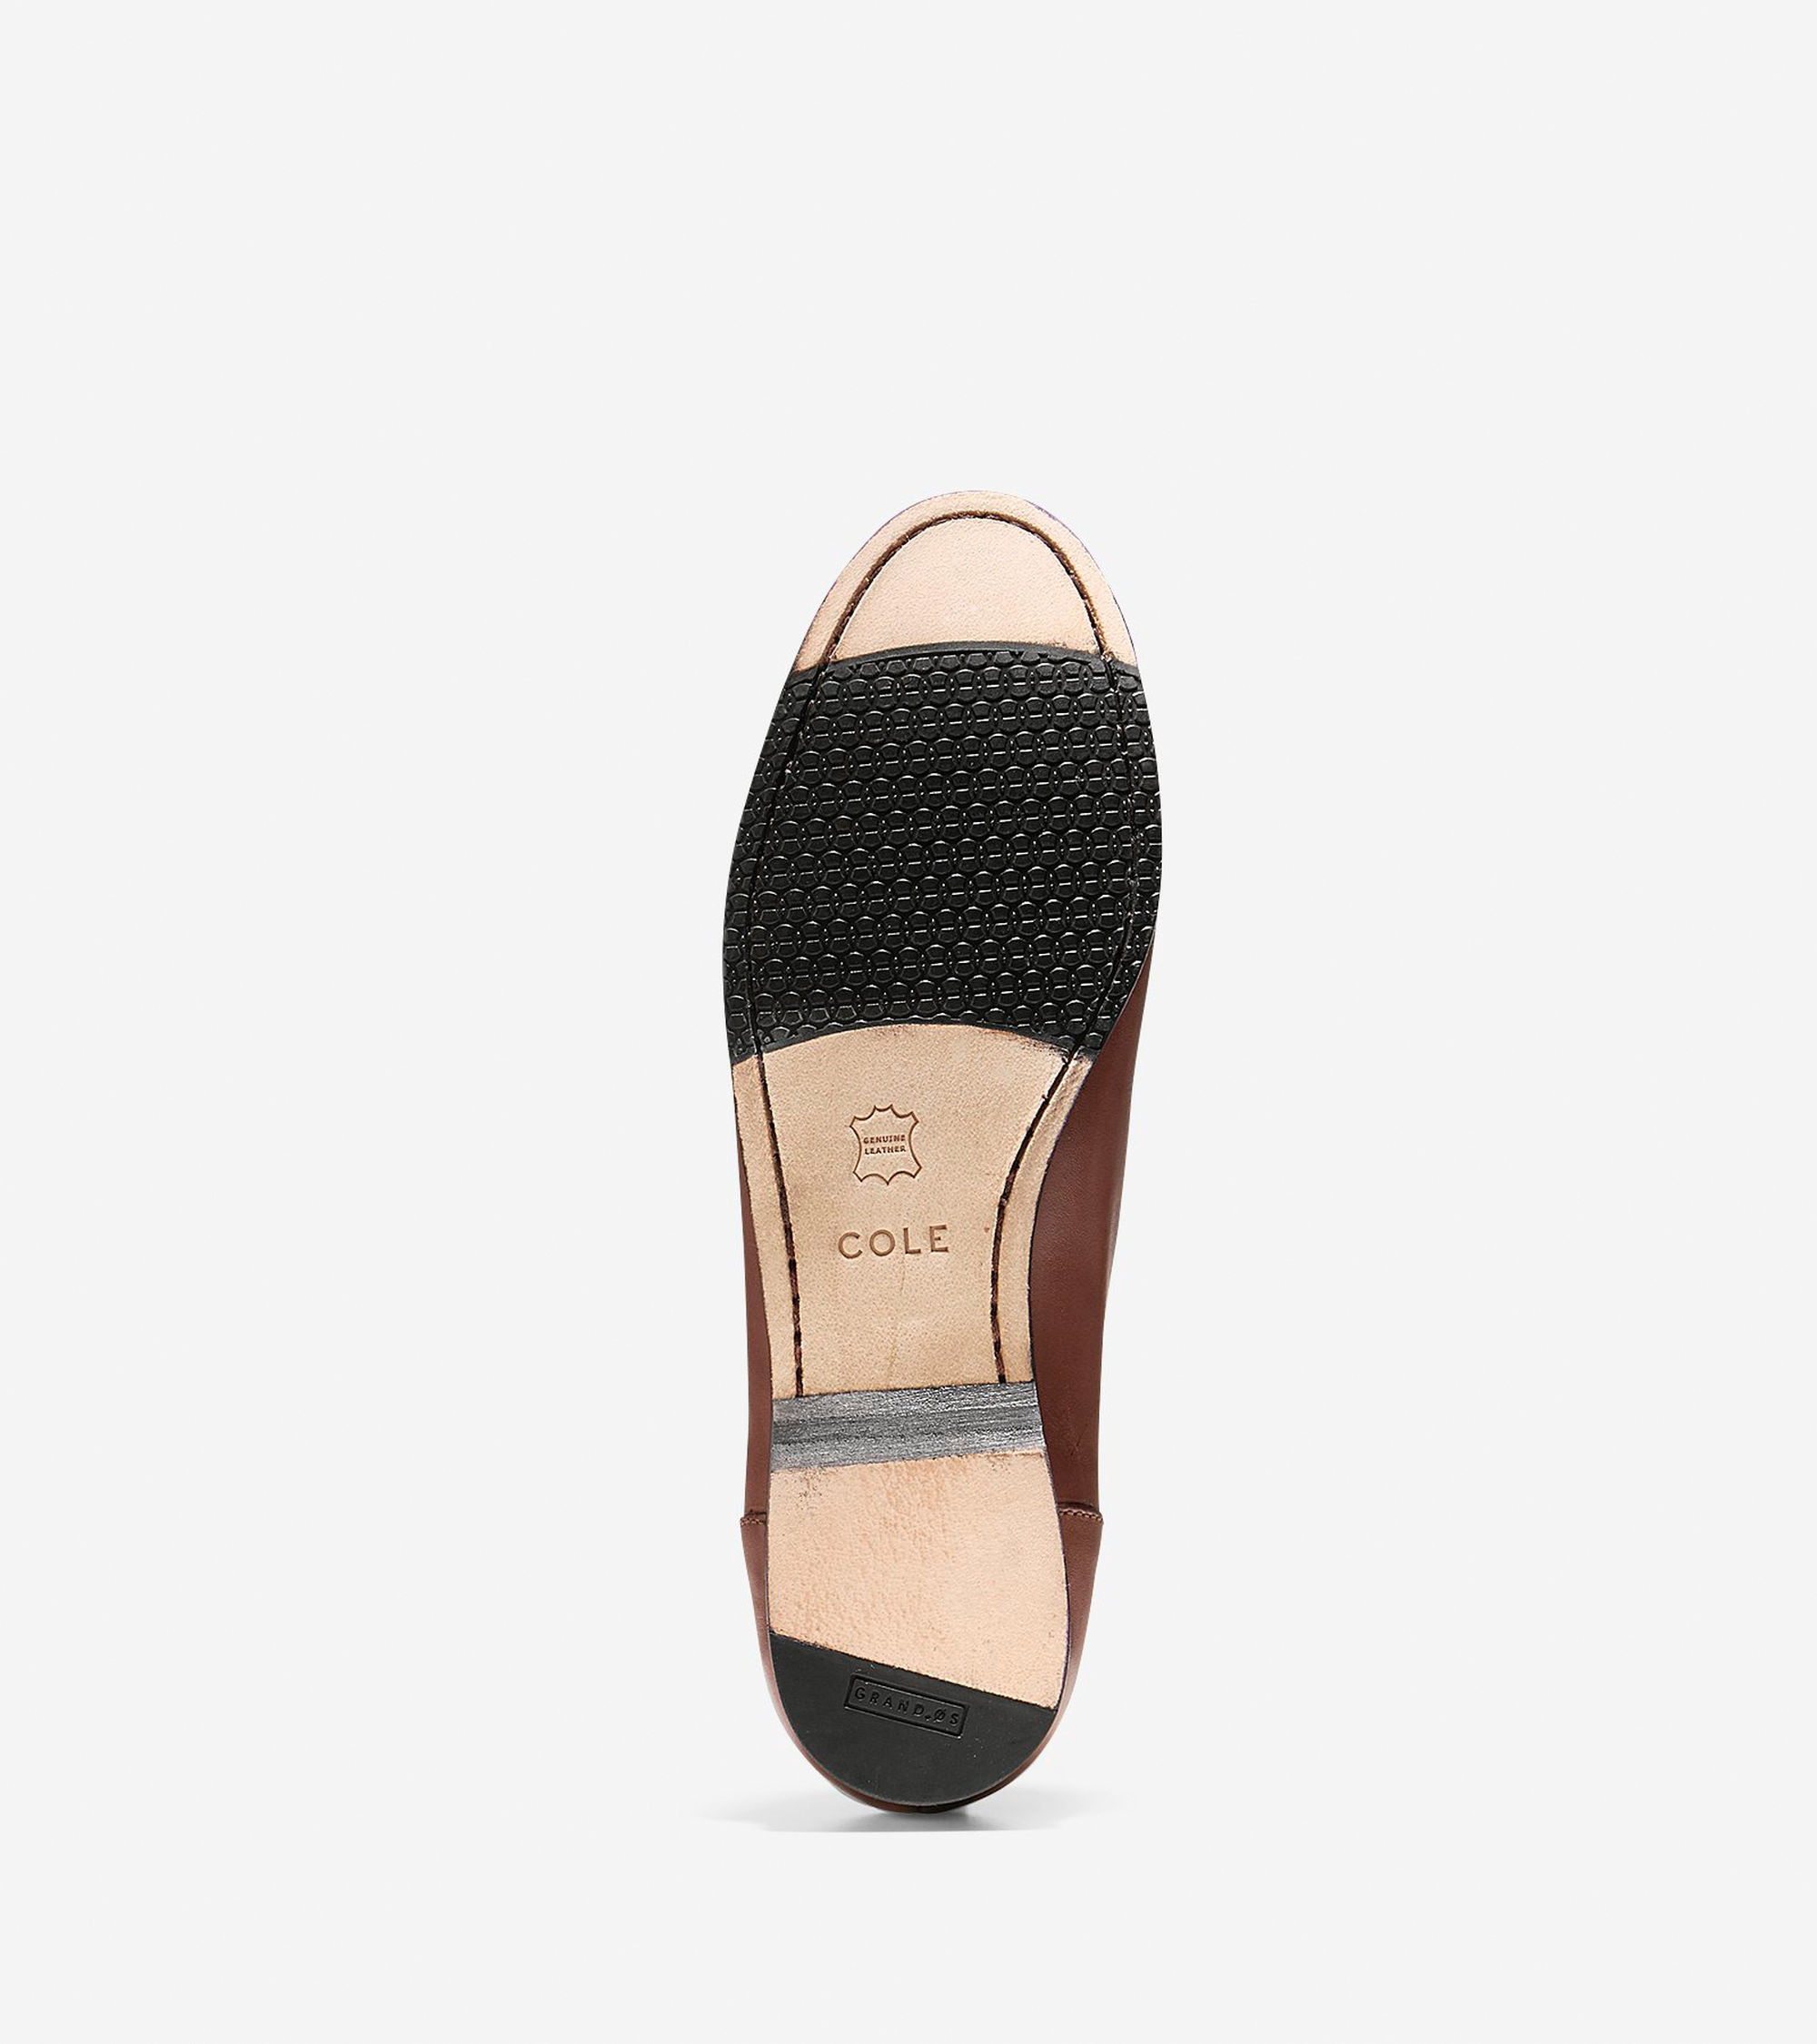 What Stores Carry Cole Haan Shoes